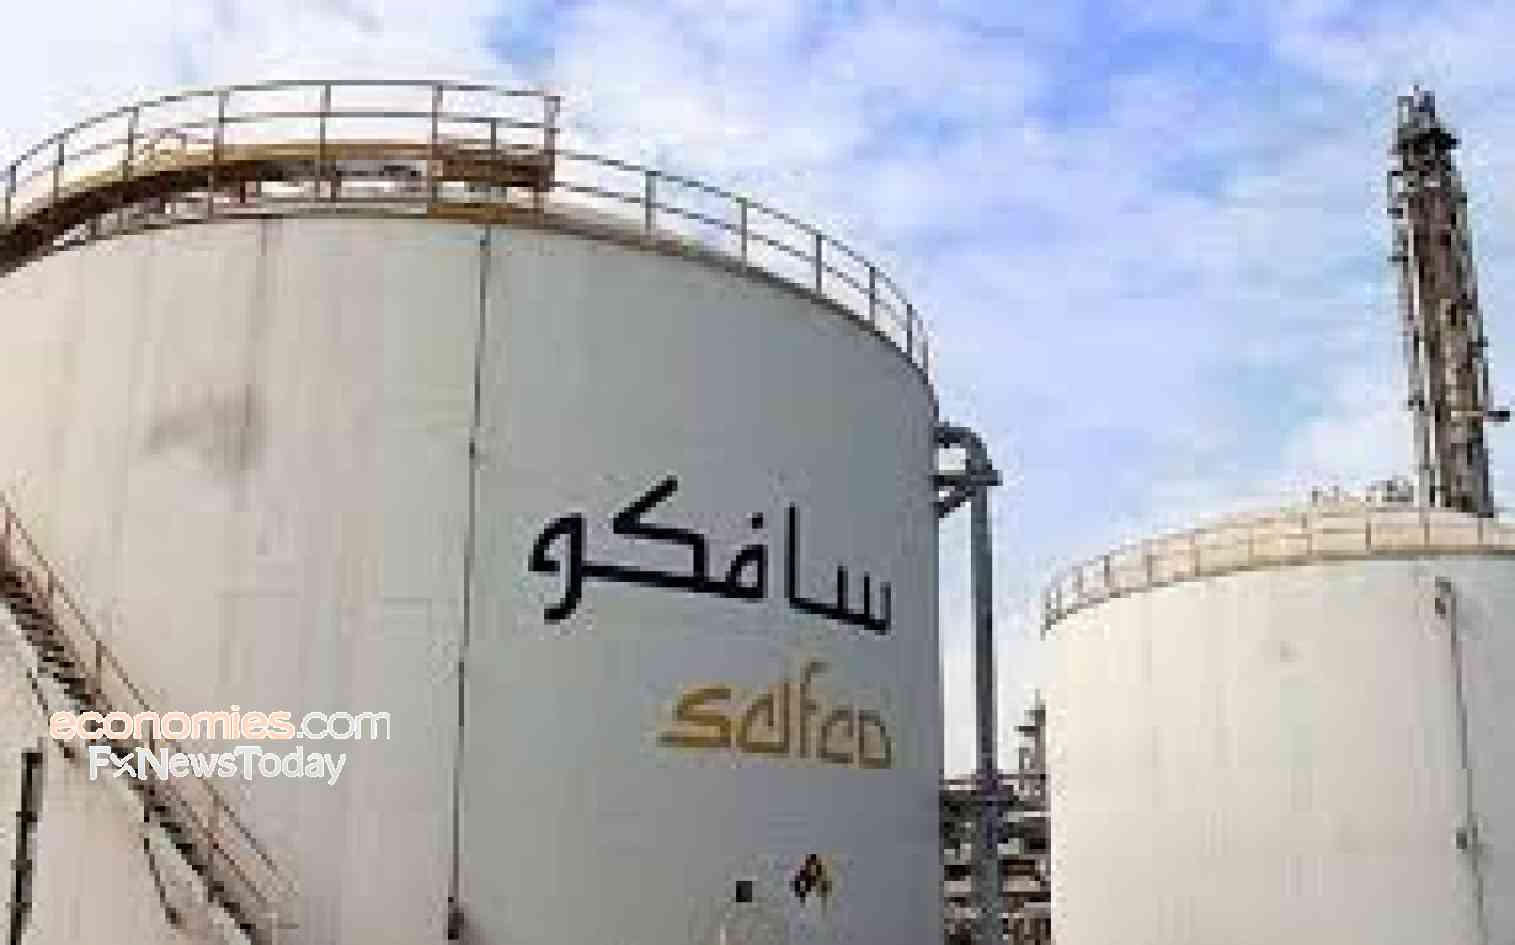 SAFCO board recommends SAR1.5/share dividend distribution for H2